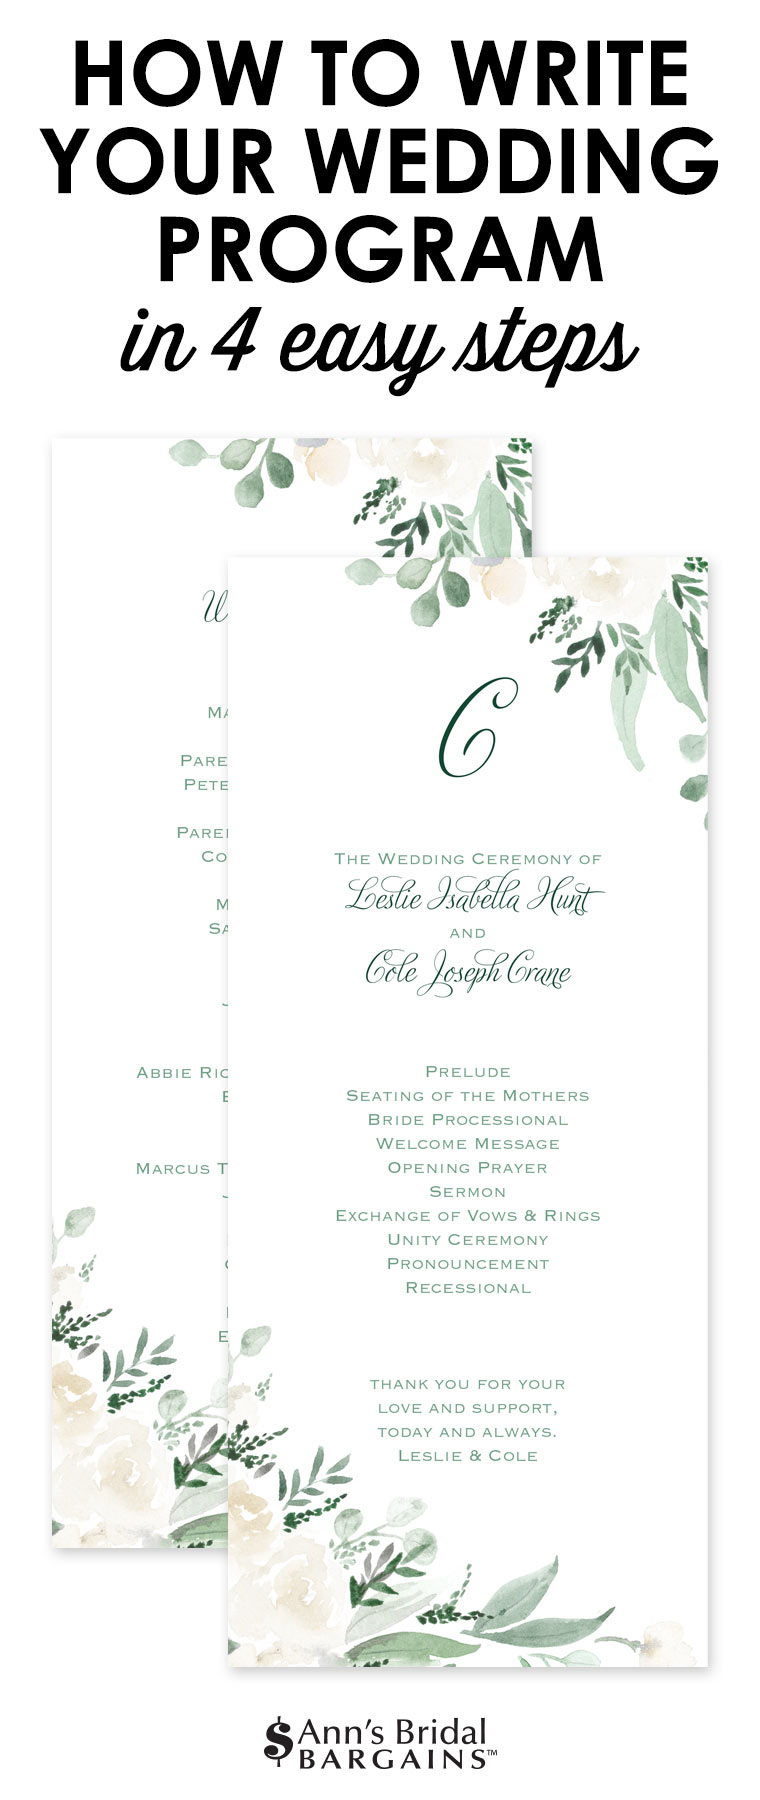 How To Write Your Wedding Program in 4 Easy Steps